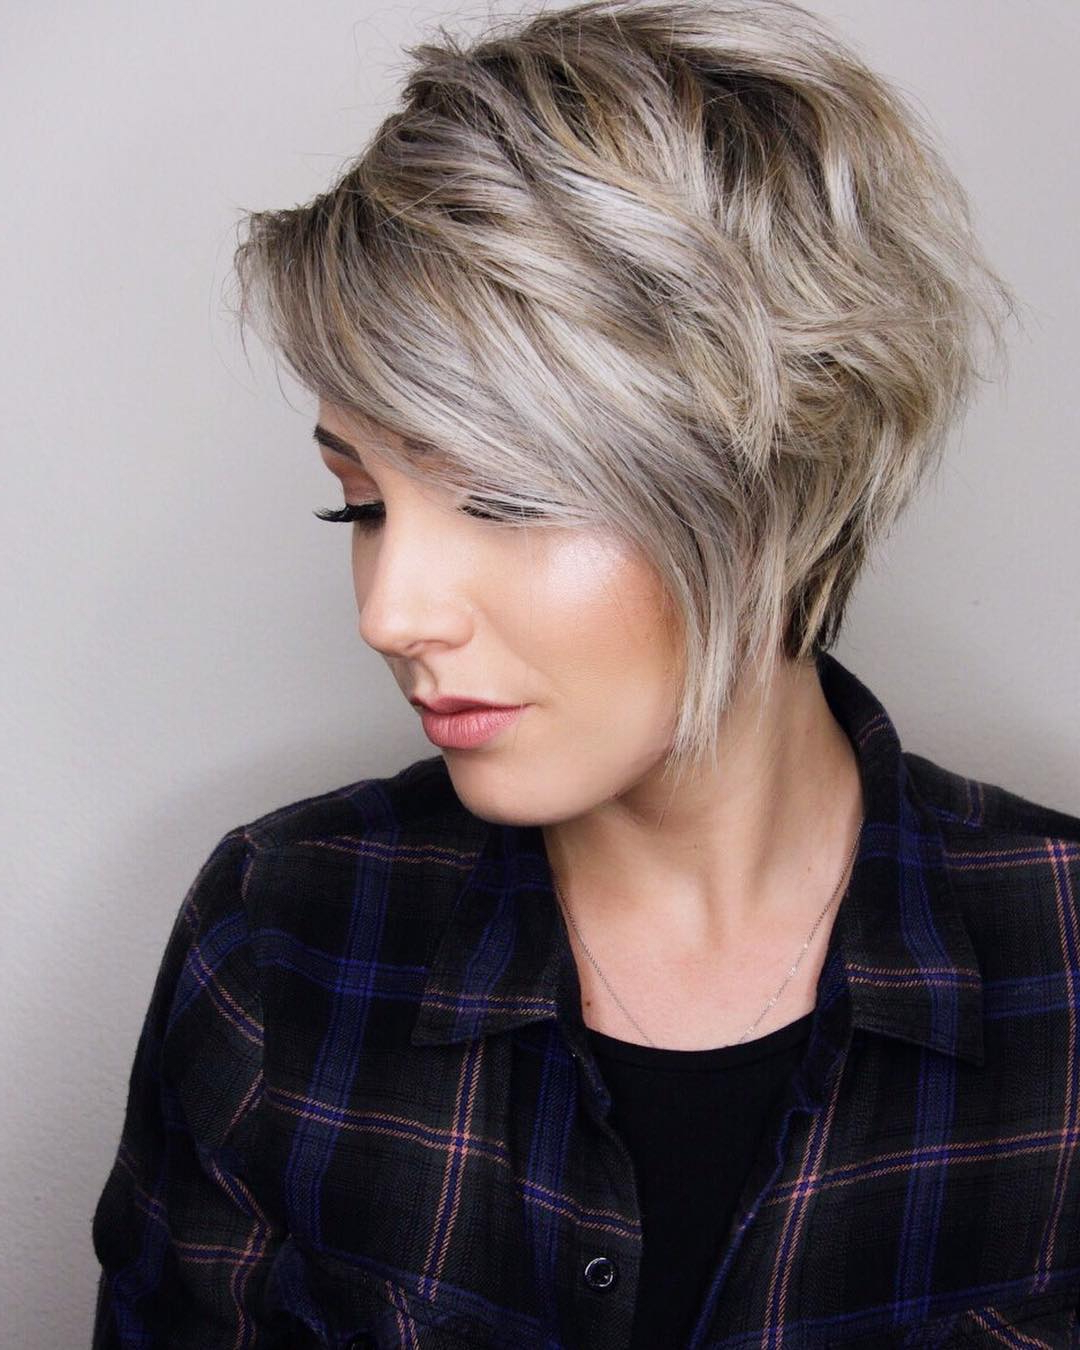 10 Trendy Layered Short Haircut Ideas For 2017 2018 – 'extra In Pixie Layered Short Haircuts (View 7 of 25)